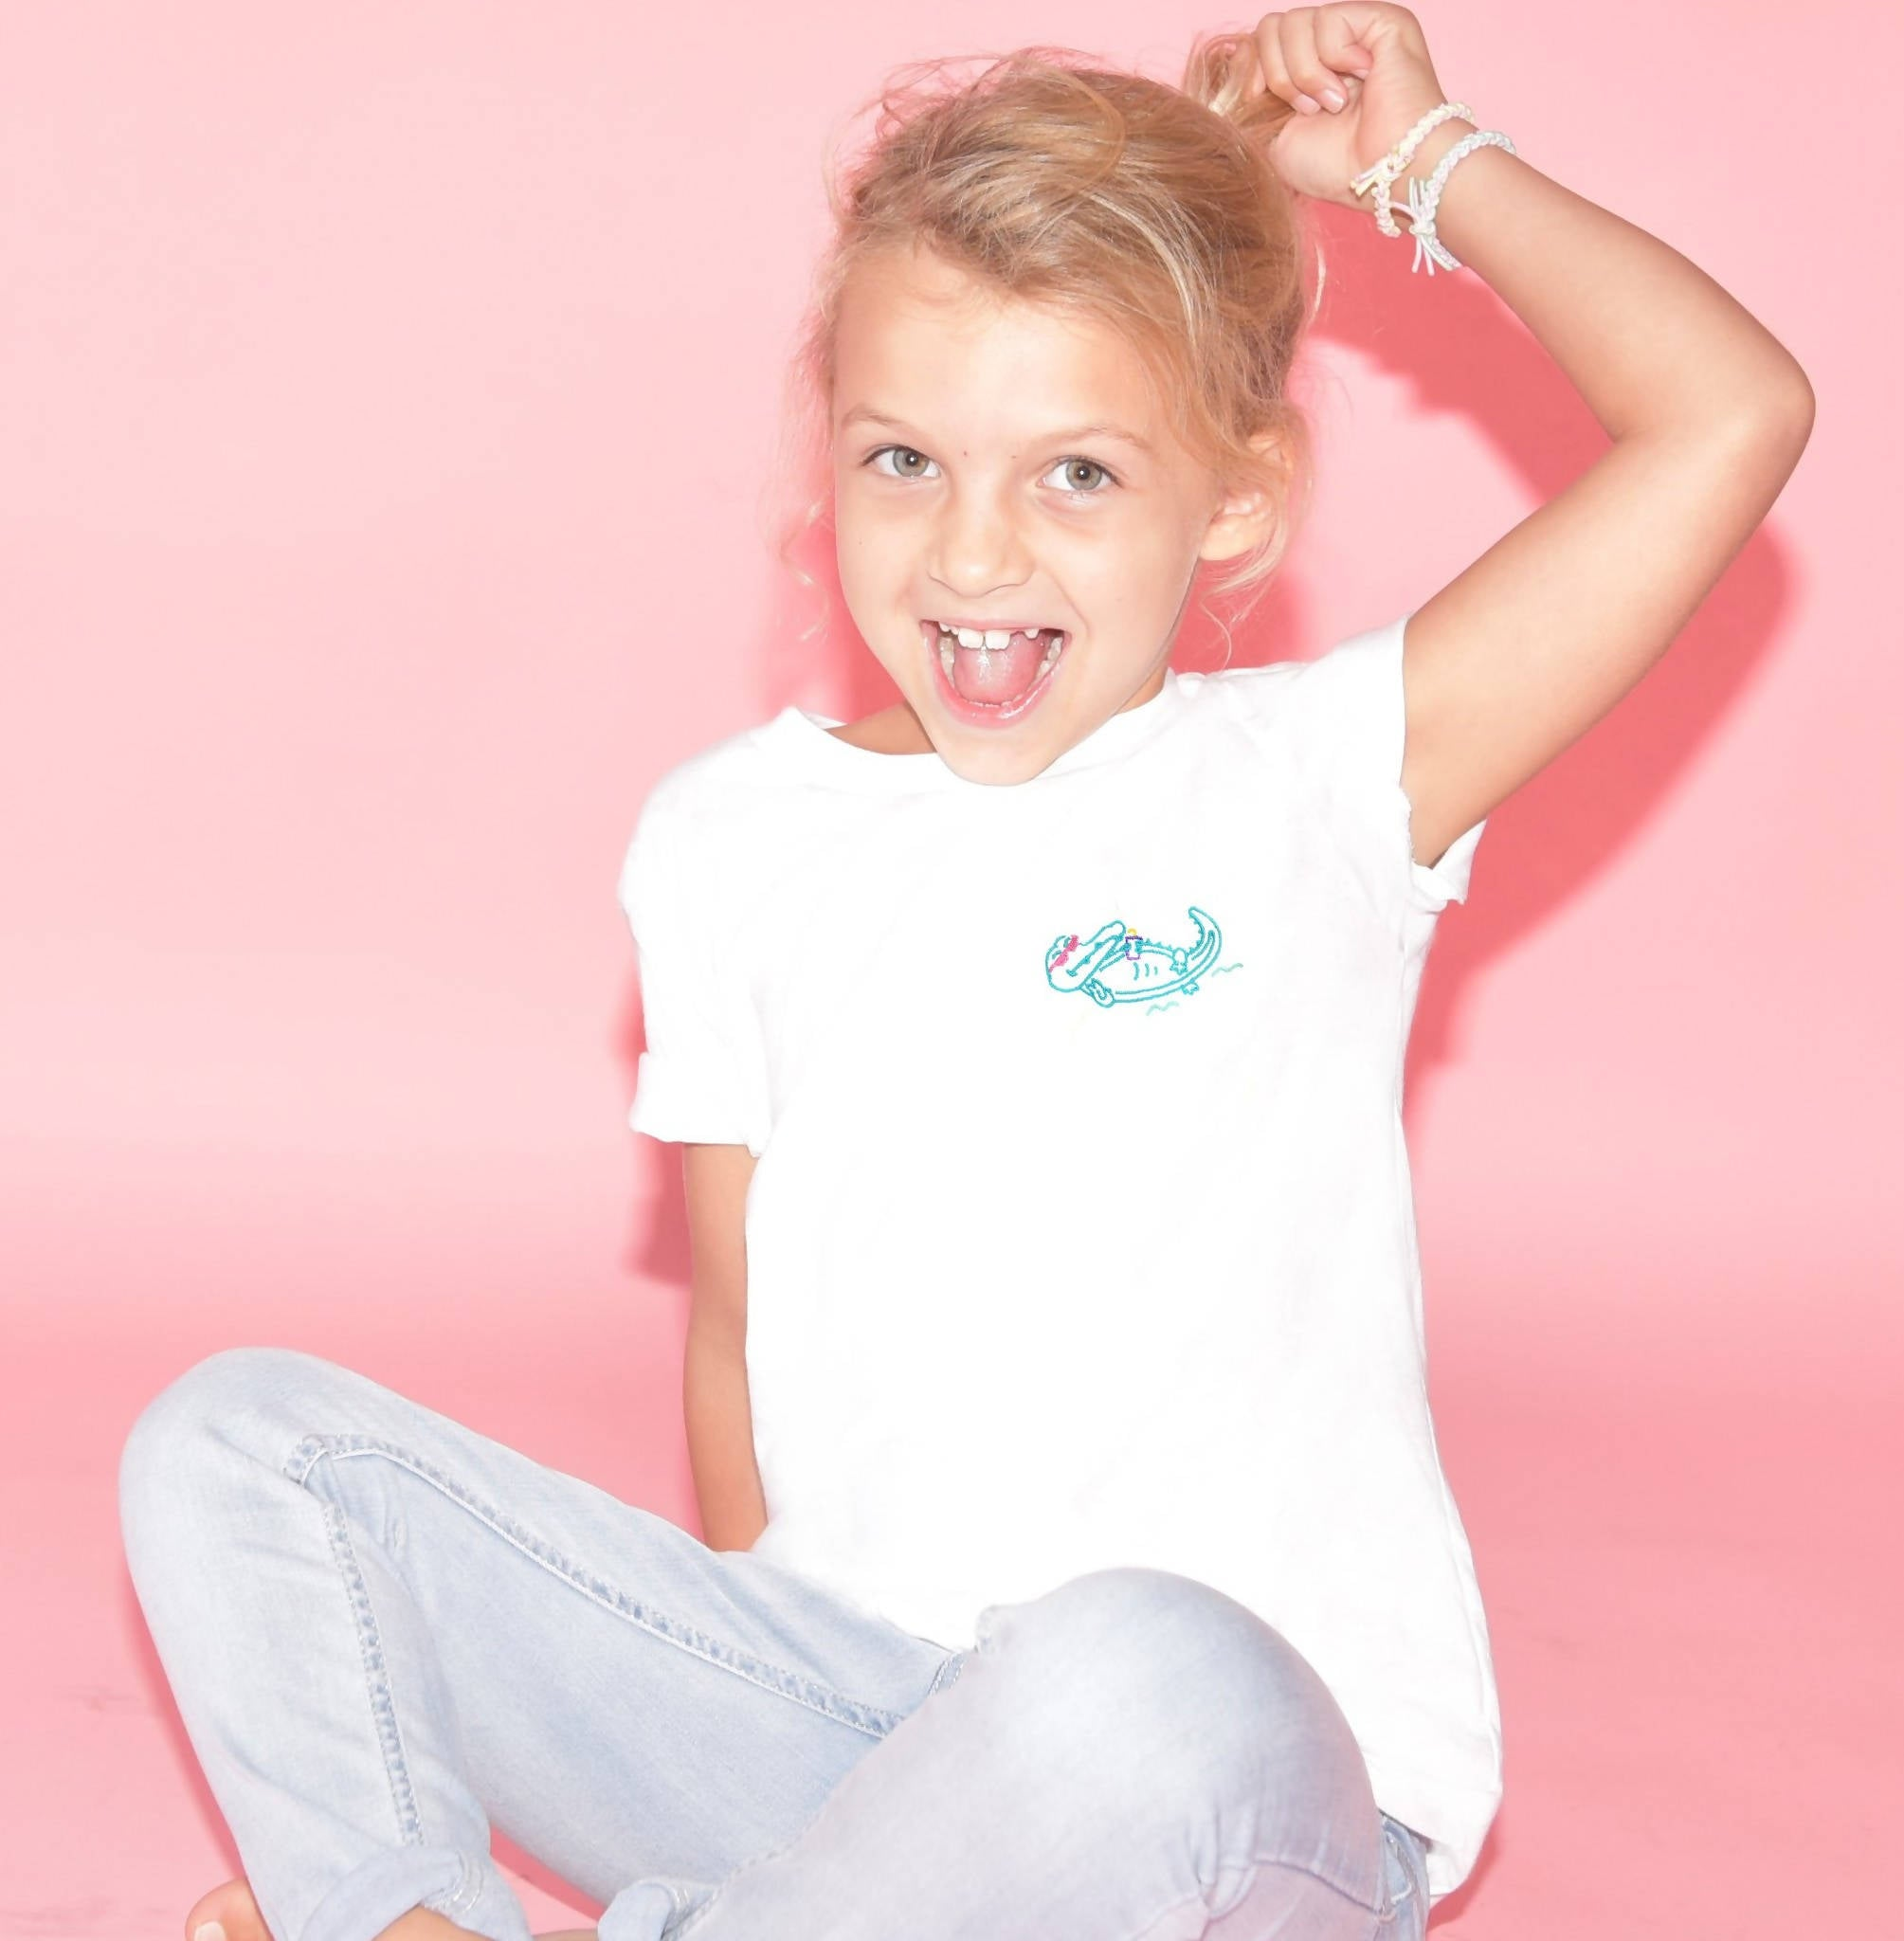 Alligator chilling in the Everglades White T-Shirt - Kid - Unisex